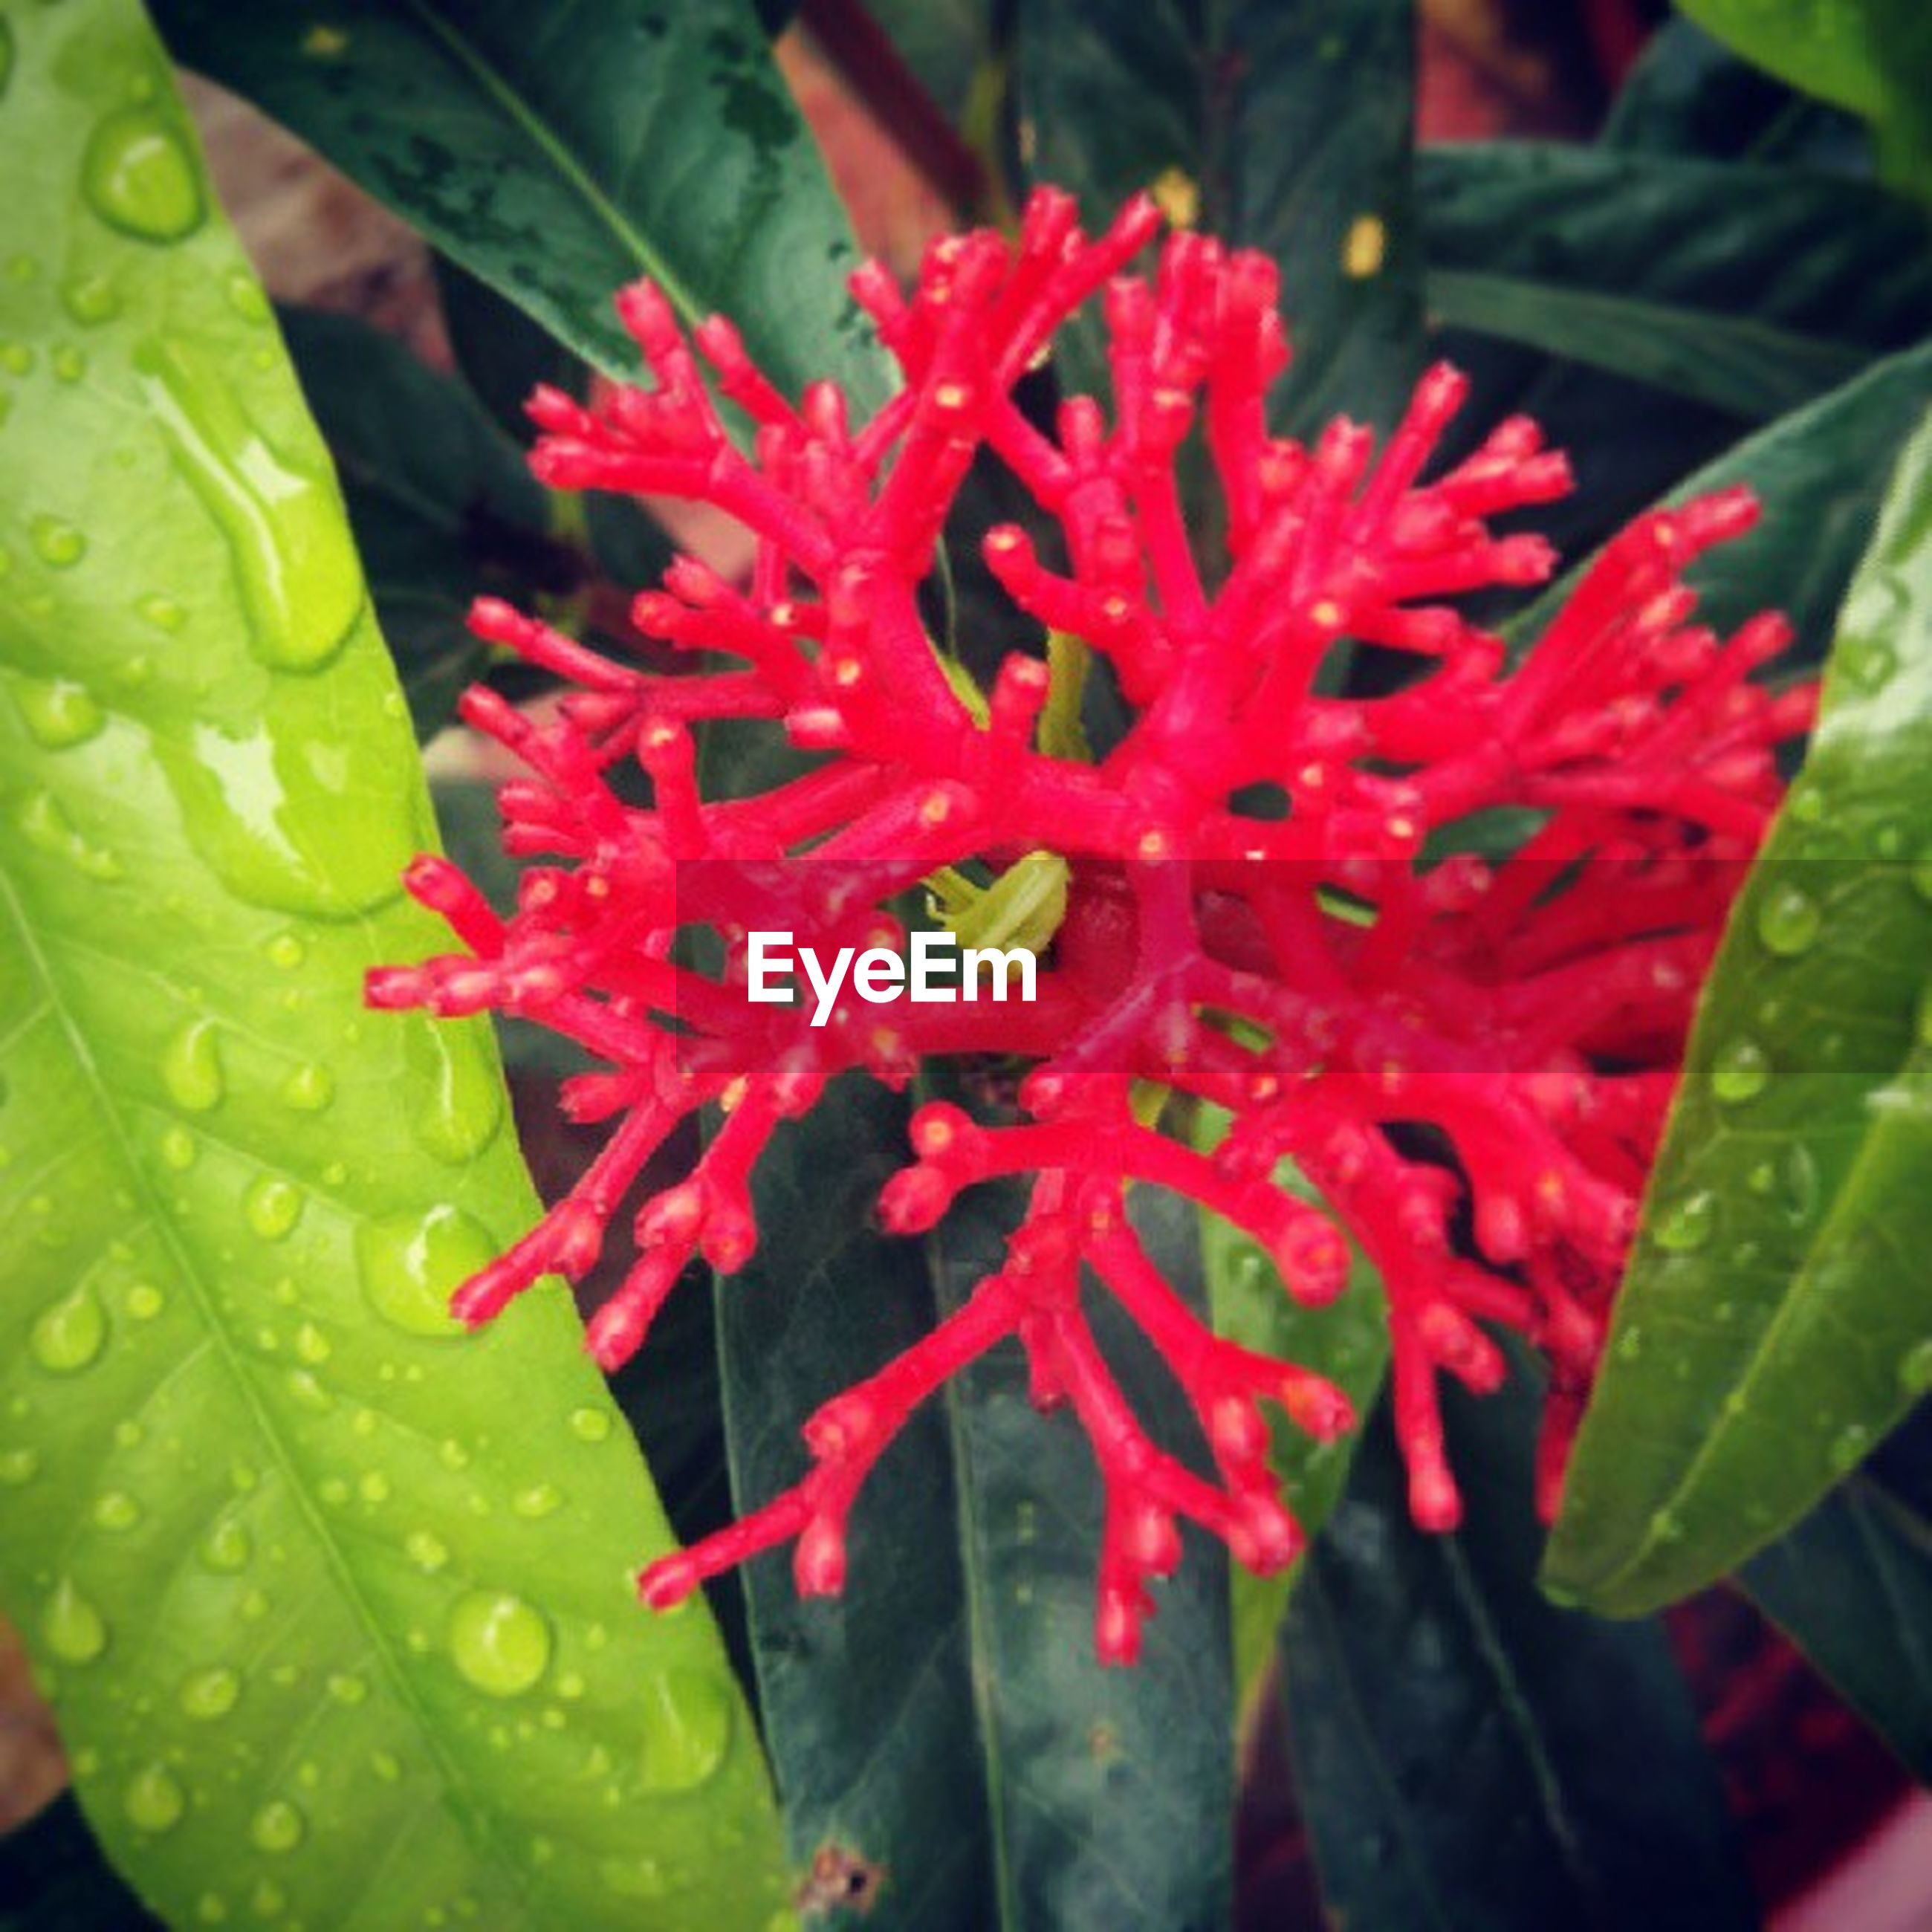 freshness, leaf, flower, growth, water, fragility, petal, plant, beauty in nature, close-up, red, nature, flower head, drop, green color, wet, blooming, single flower, focus on foreground, high angle view